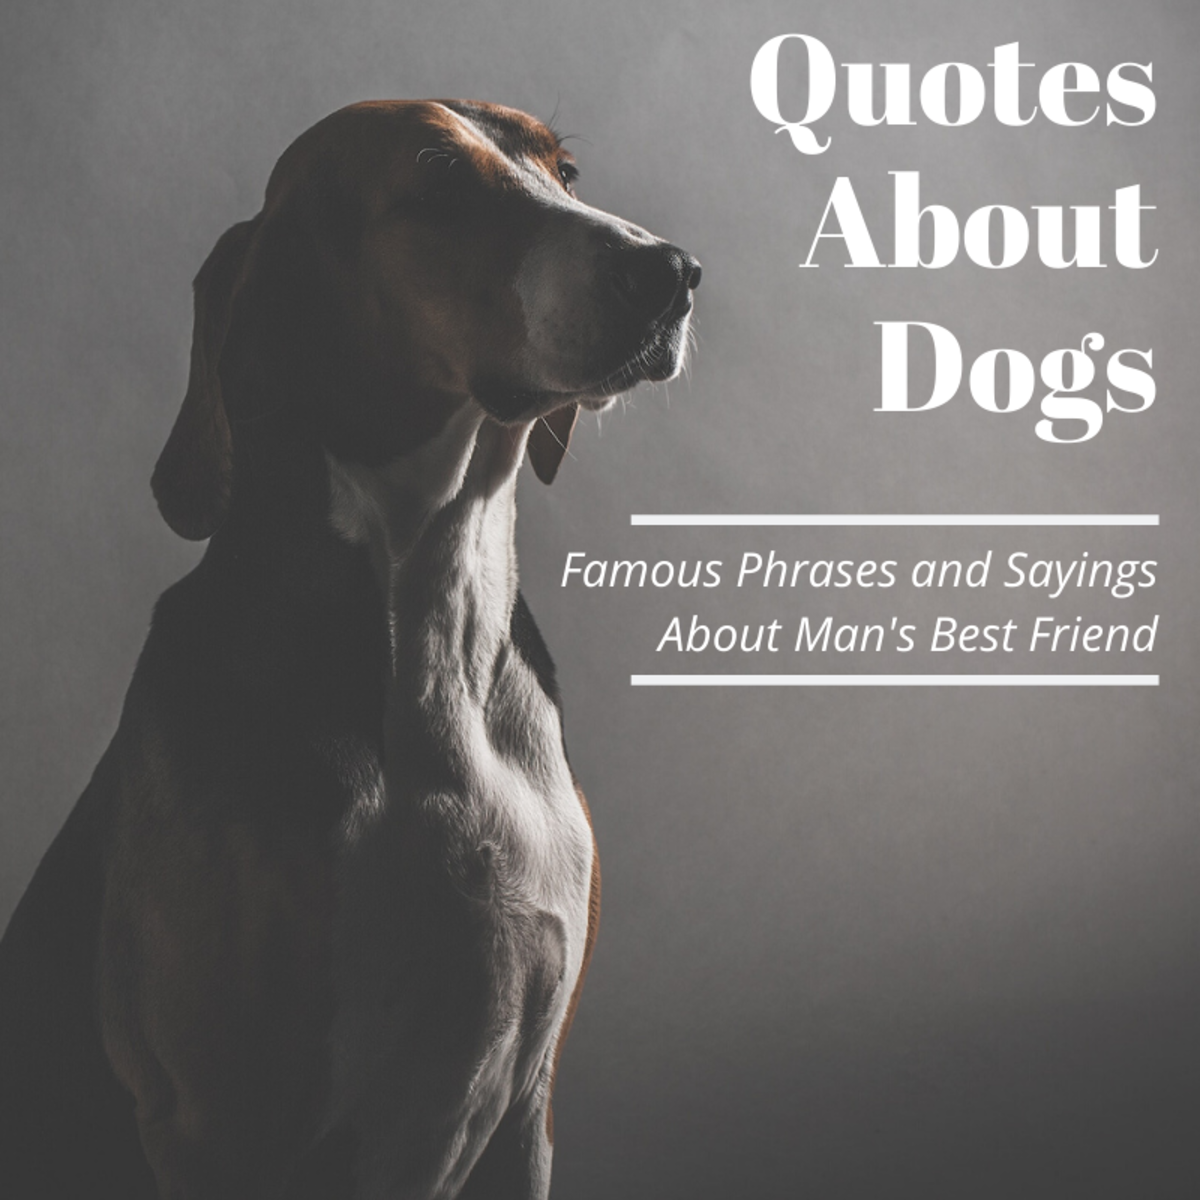 Famous Quotes About Dogs